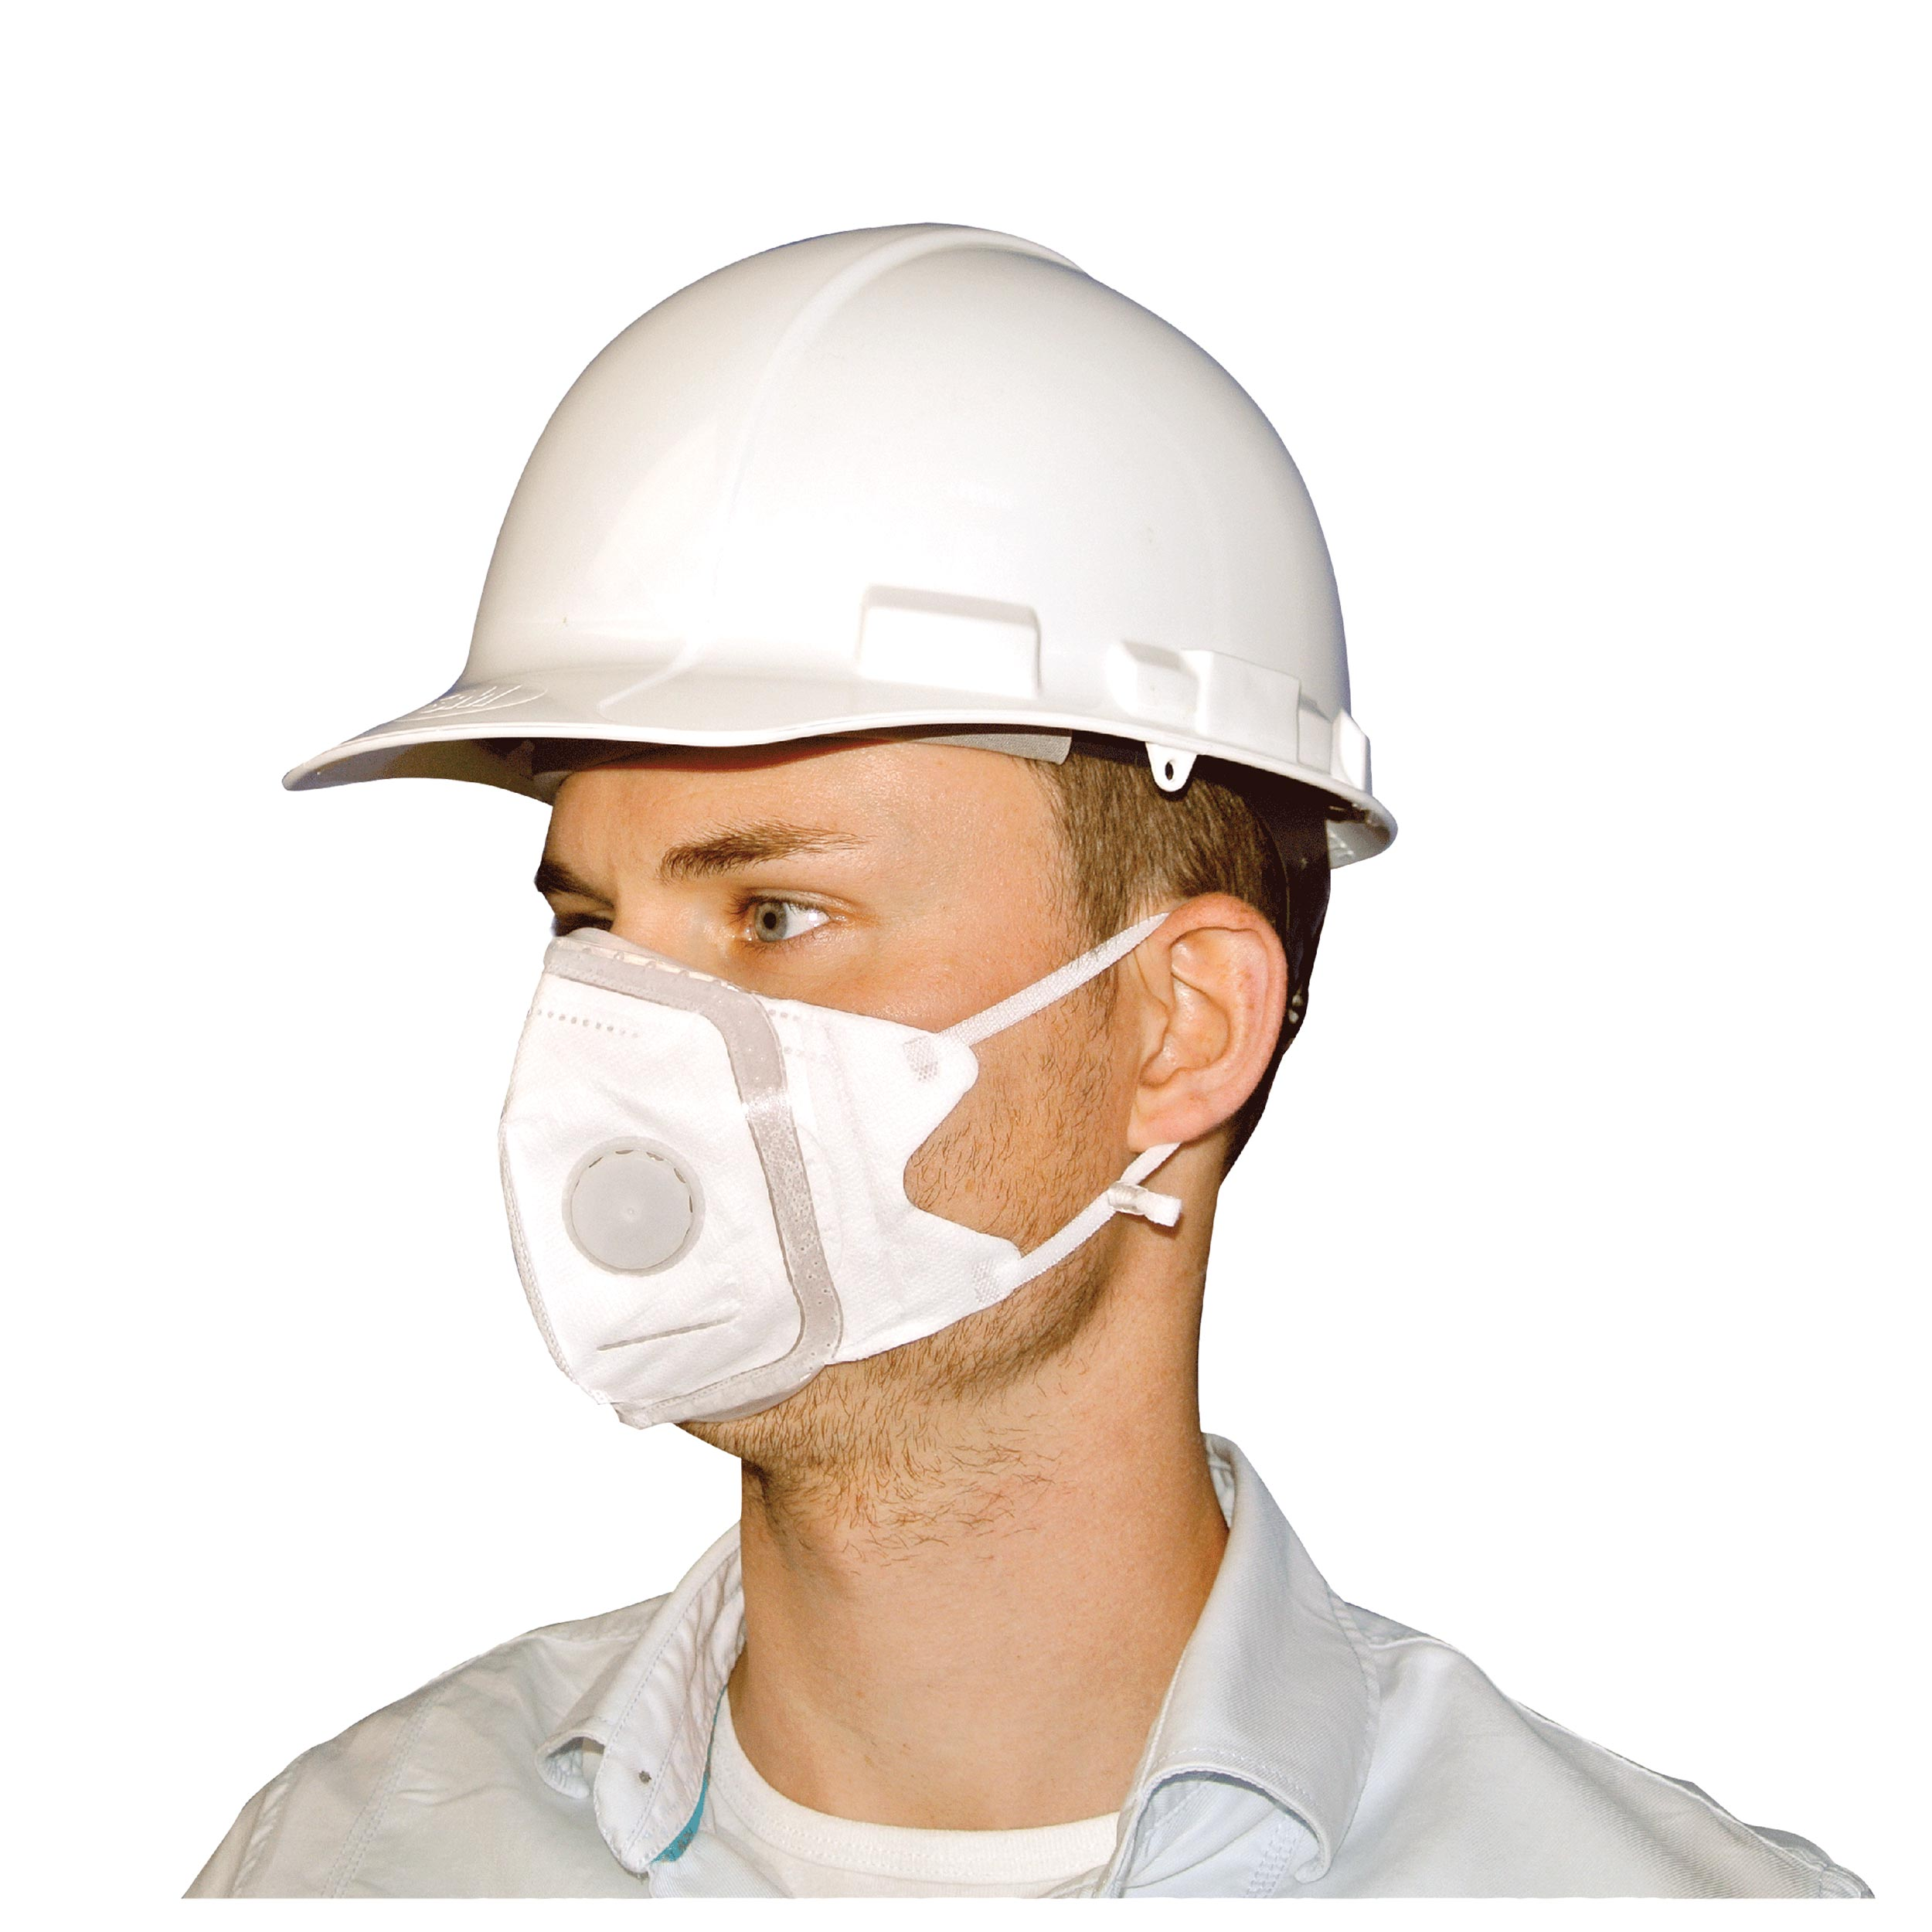 SoftSeal Respirator V-Fold Mask with Valve, Medium, 3-pack